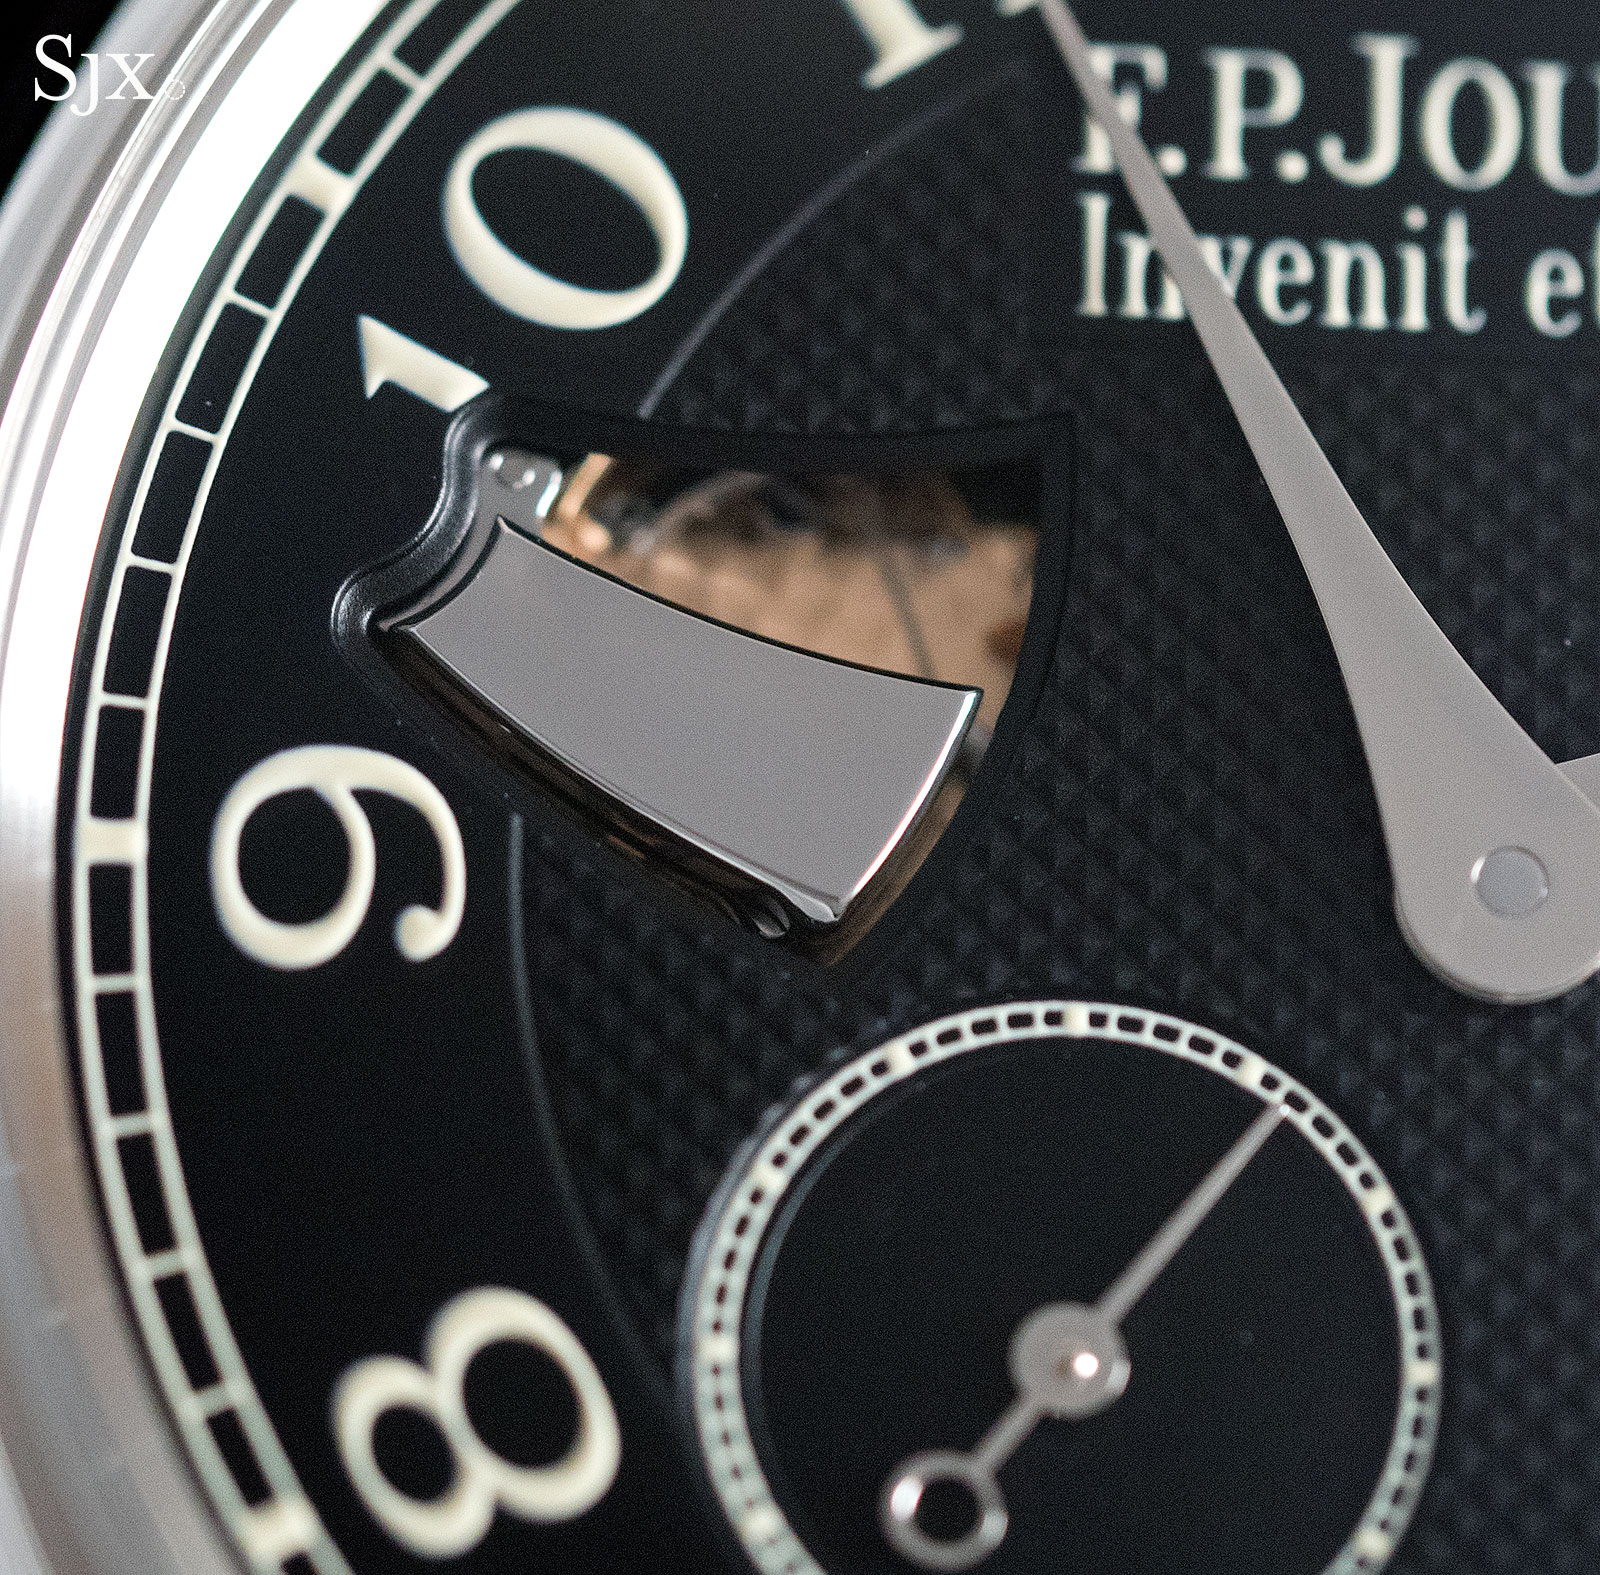 FP Journe Black Label Minute Repeater 2